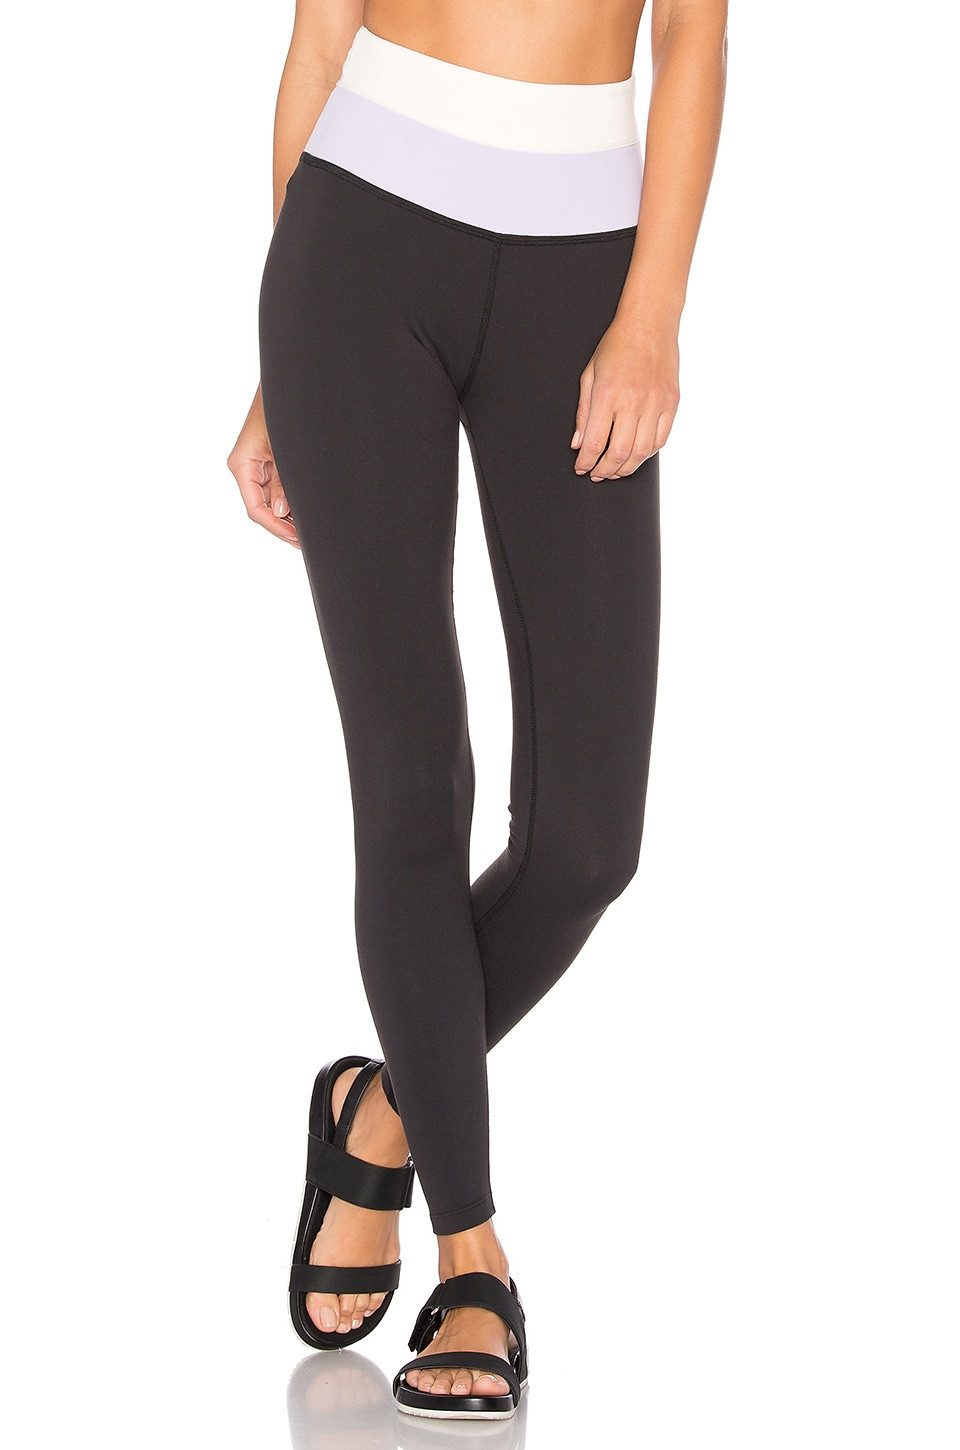 x kate spade Blocked High Waist Long Legging by Beyond Yoga